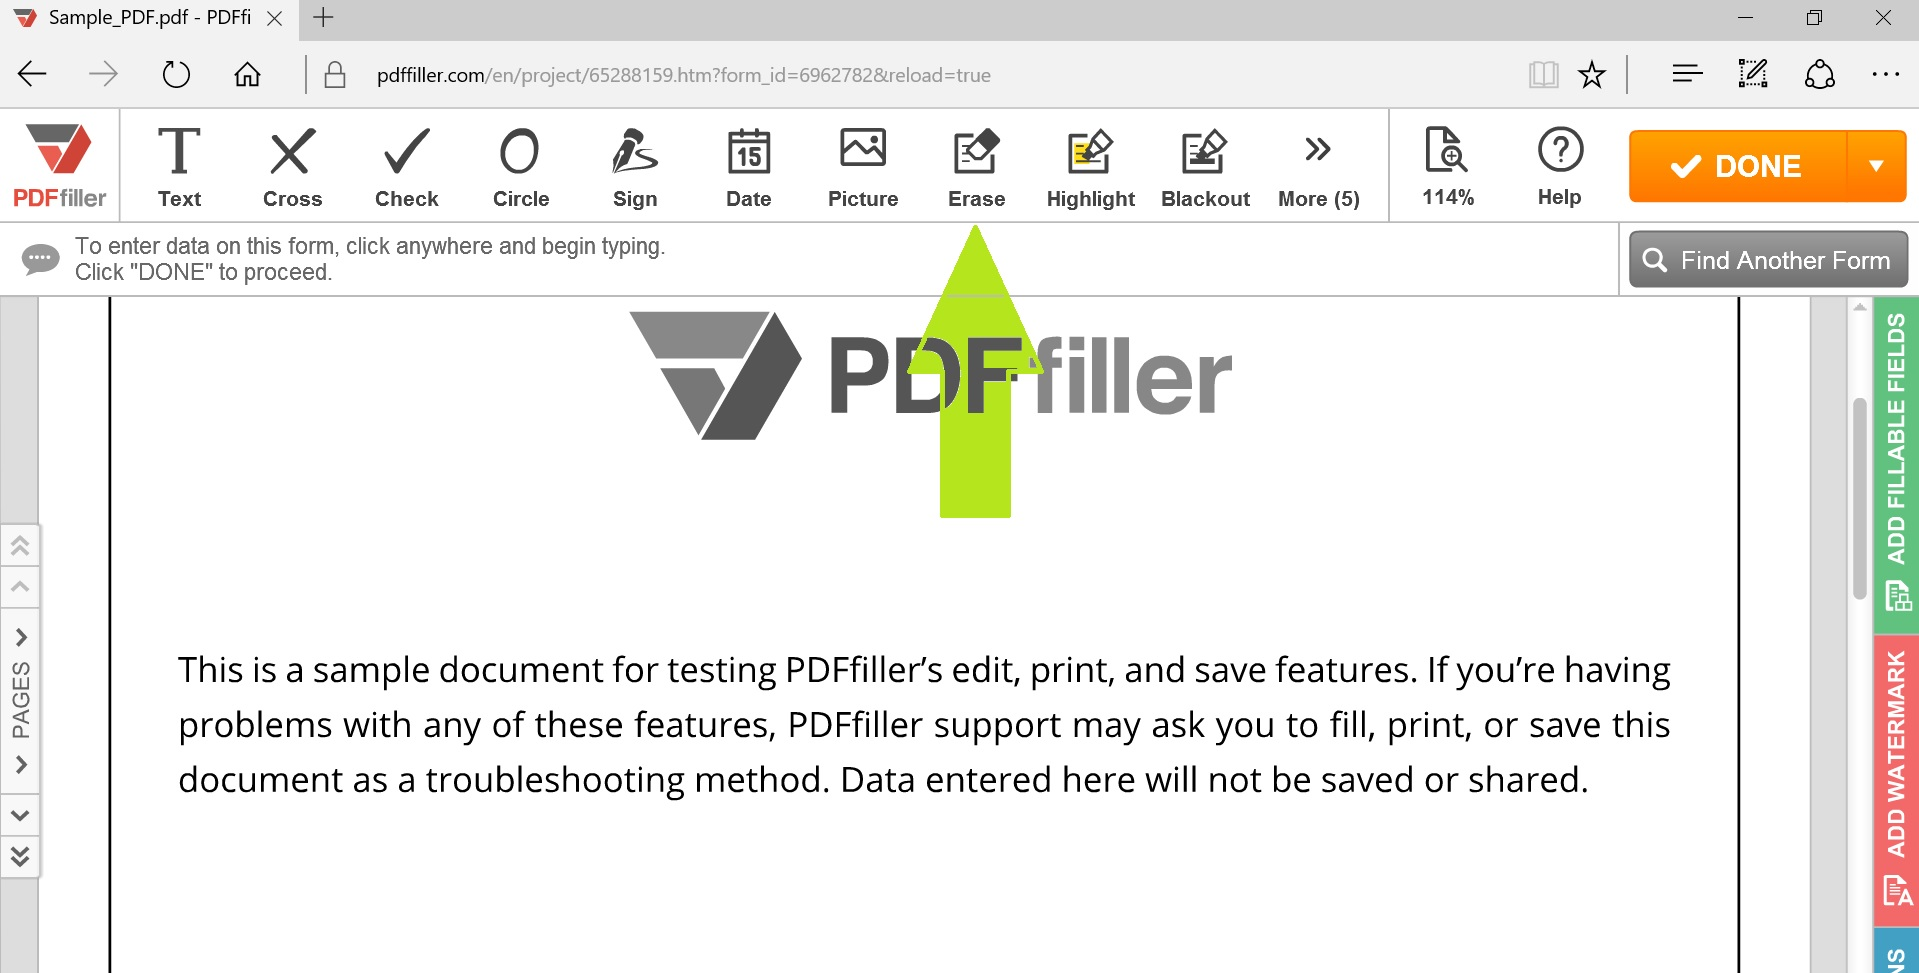 Compress PDF: Reduce File Size with PDF Compressor | PDFfiller